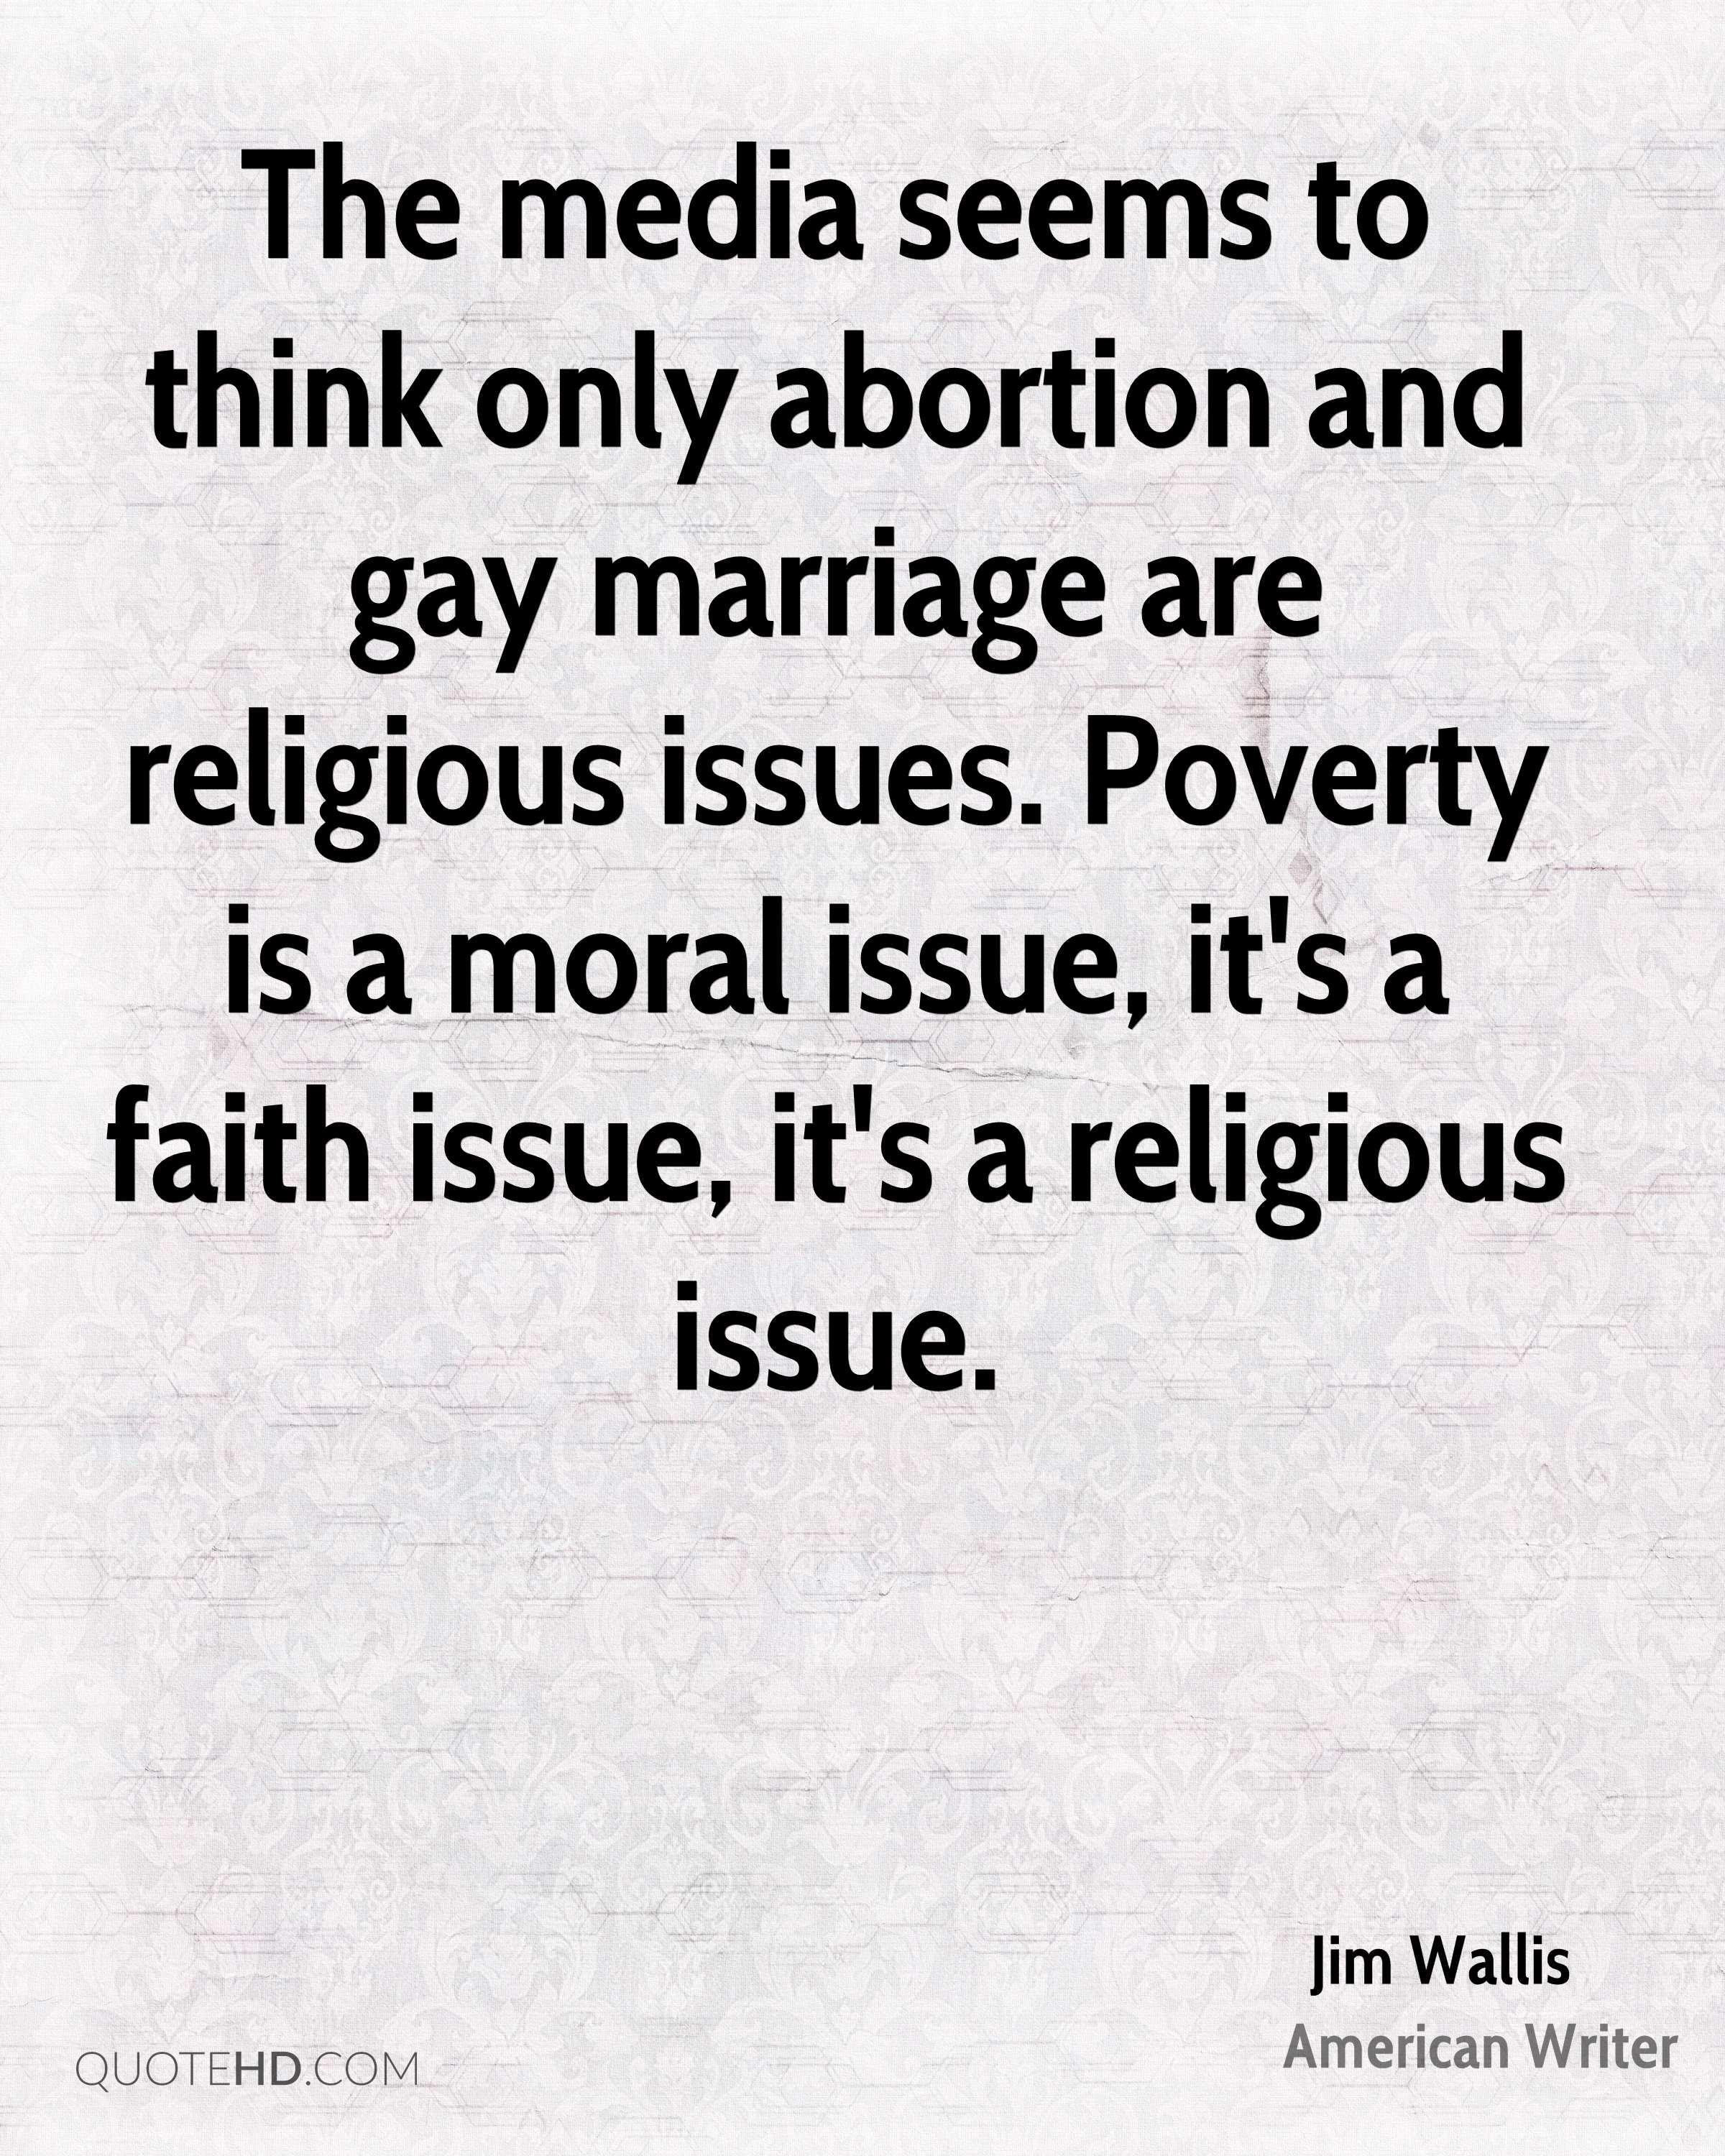 abortion quotes page 1  jim wallis the media seems to think only abortion and gay marriage are religious issues